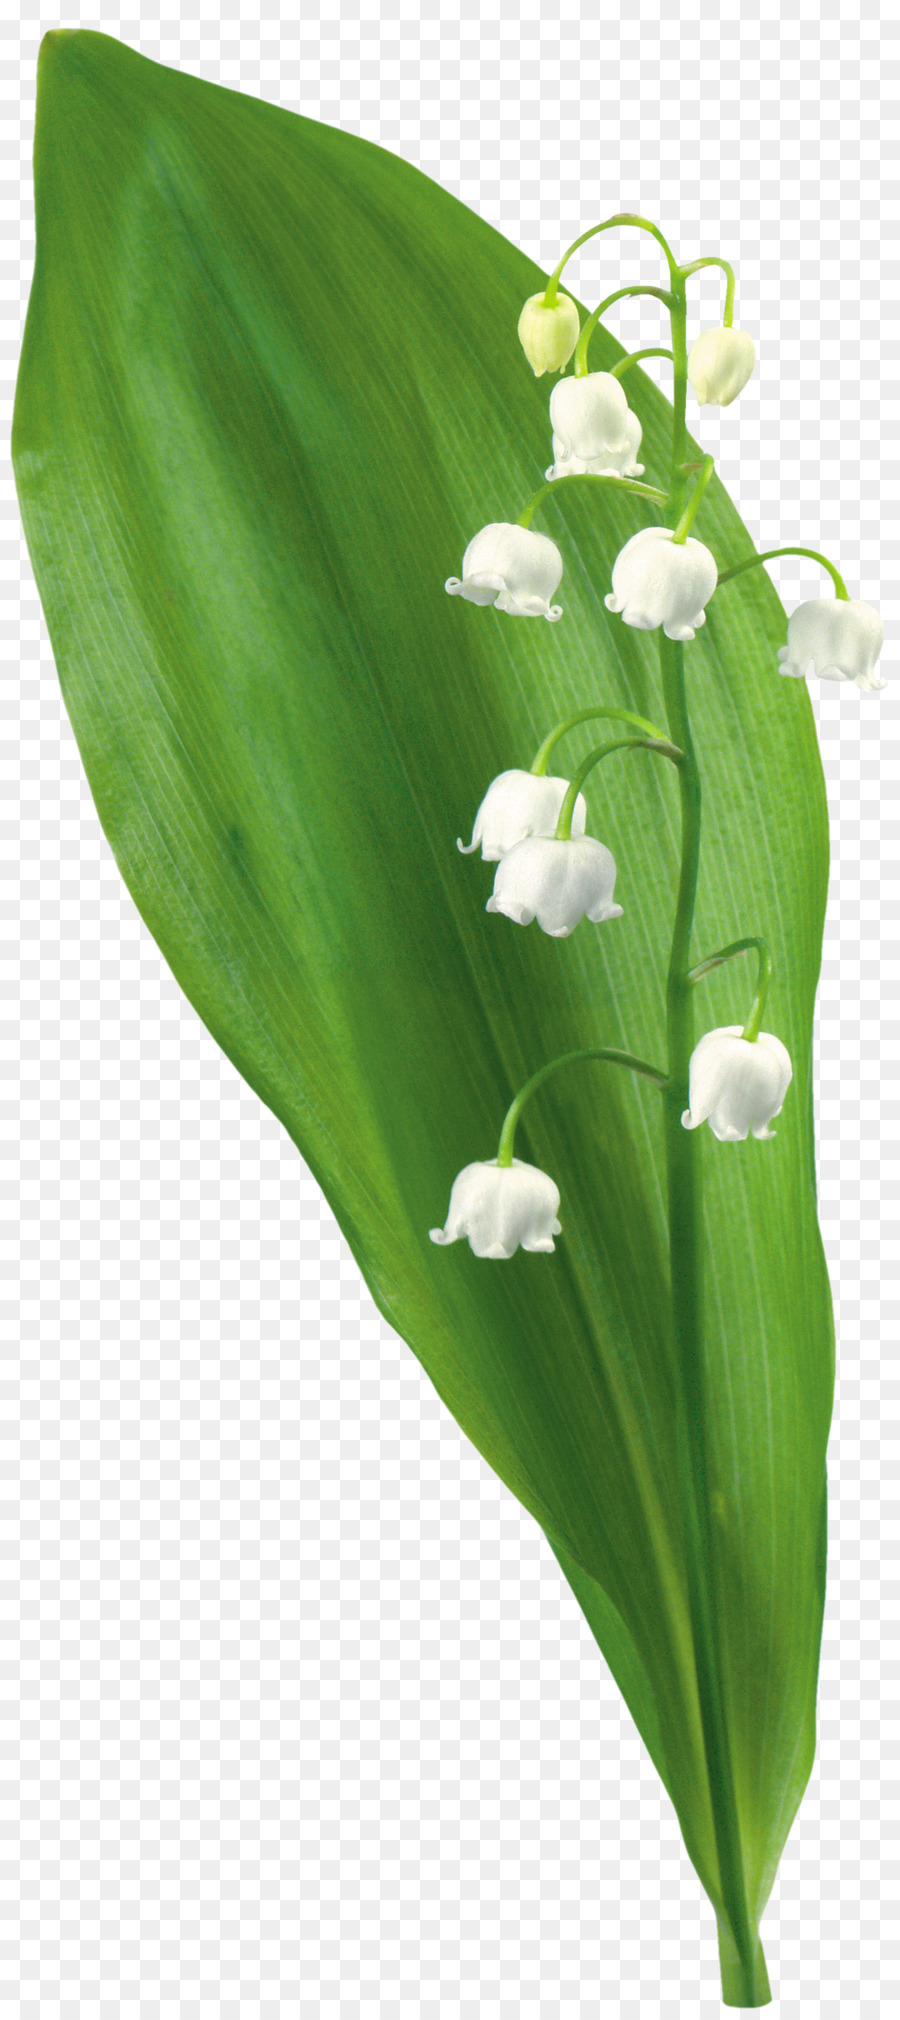 Flower plant tree clip art lily of the valley png download 1990 flower plant tree clip art lily of the valley izmirmasajfo